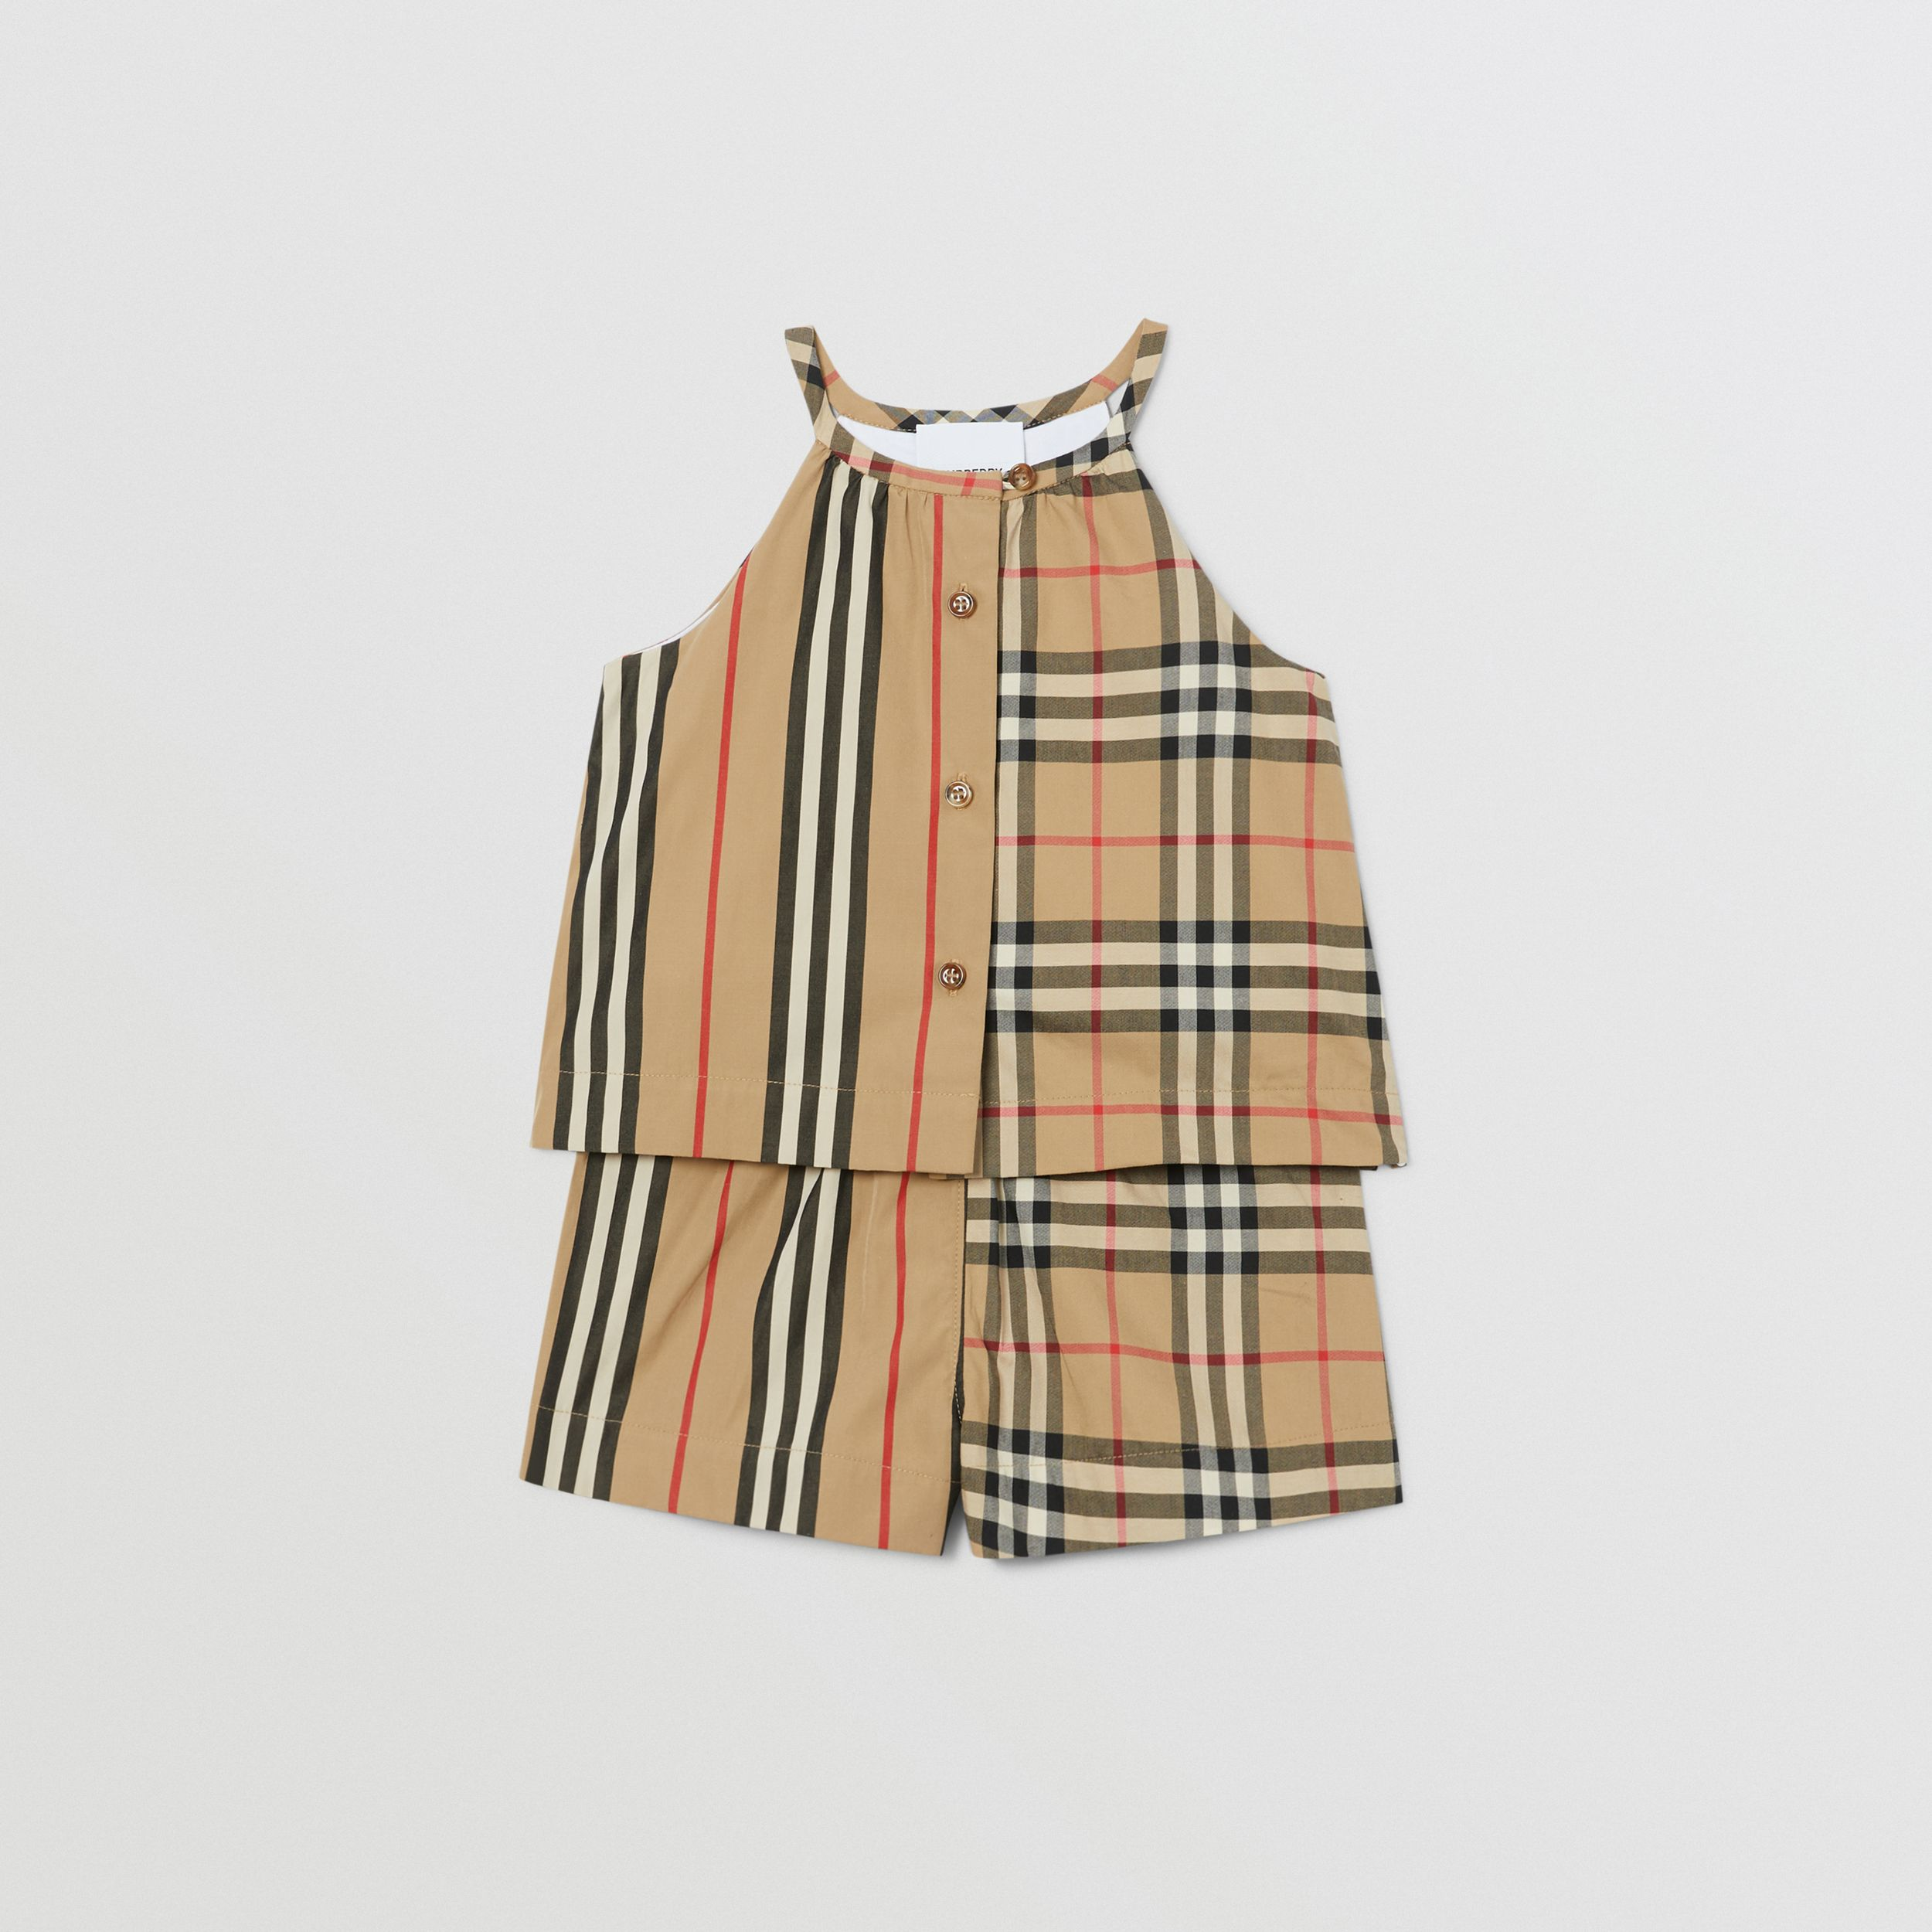 Vintage Check and Icon Stripe Cotton Playsuit in Archive Beige - Children | Burberry Hong Kong S.A.R. - 1